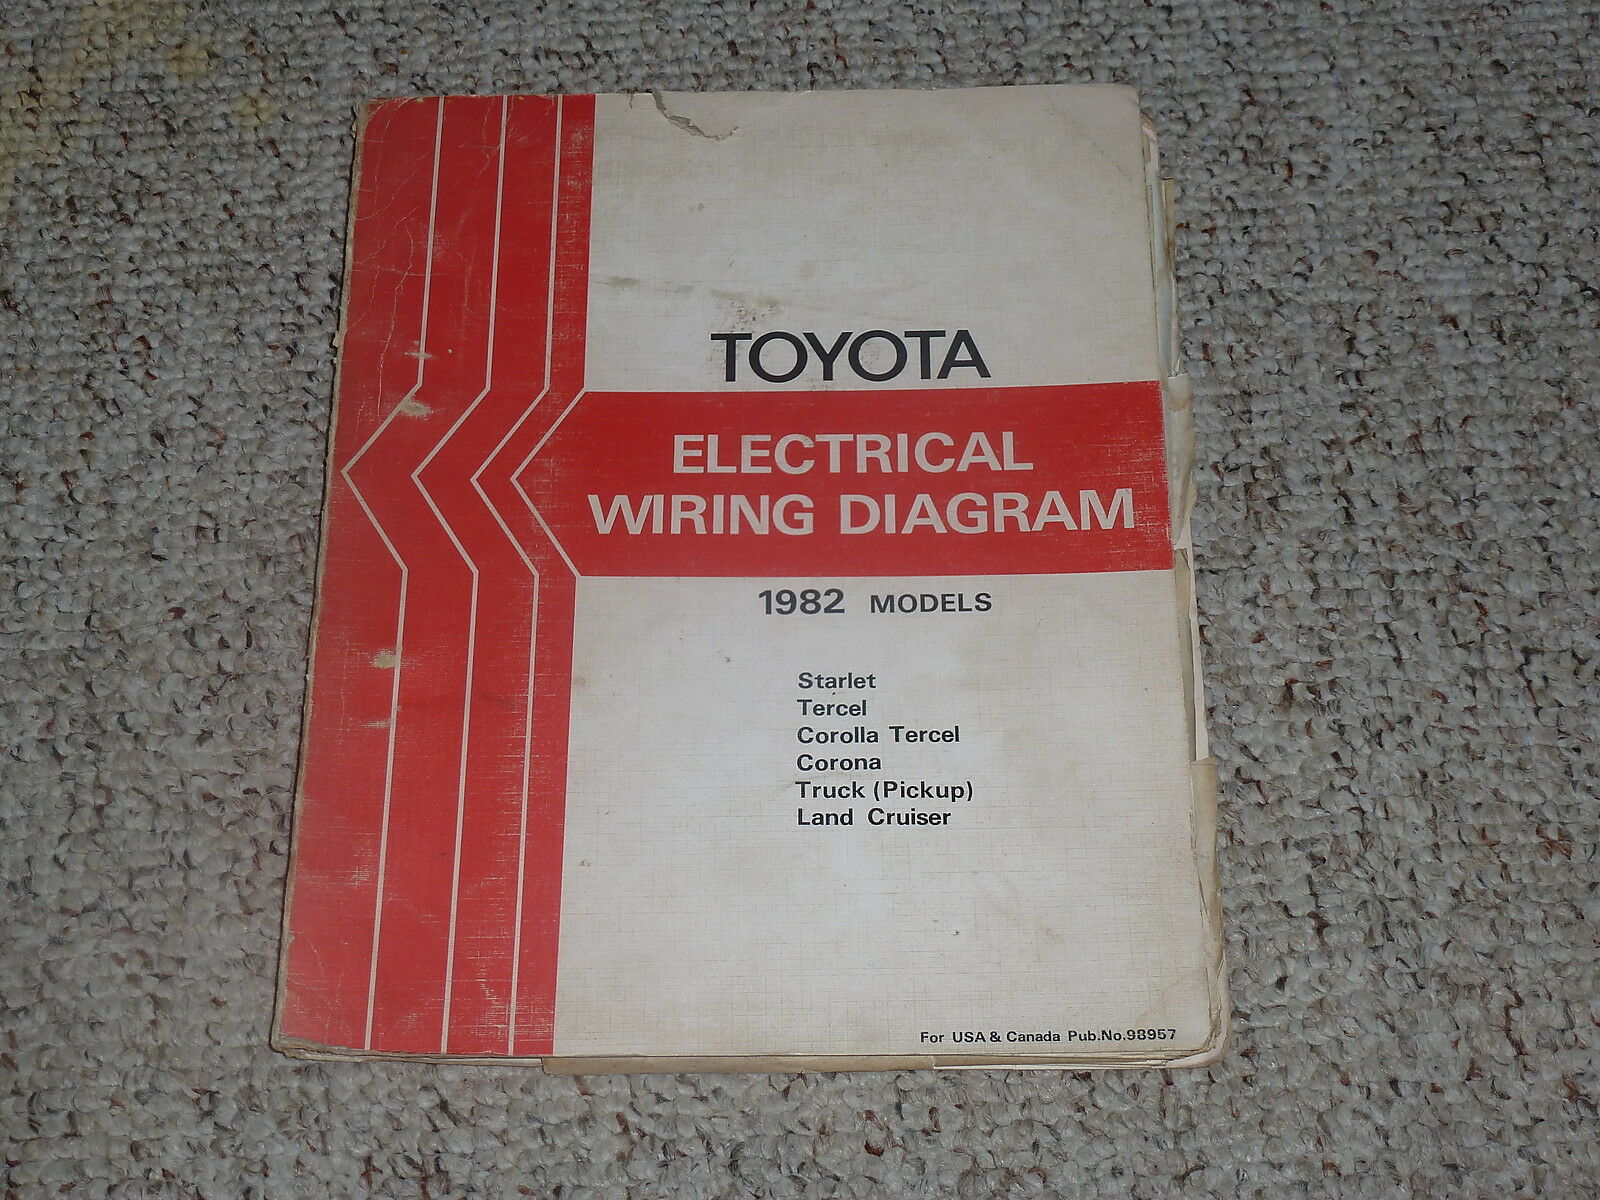 hight resolution of 1982 toyota land cruiser fj40 fj60 bj42 bj60 electrical wiring diagram manual 2f